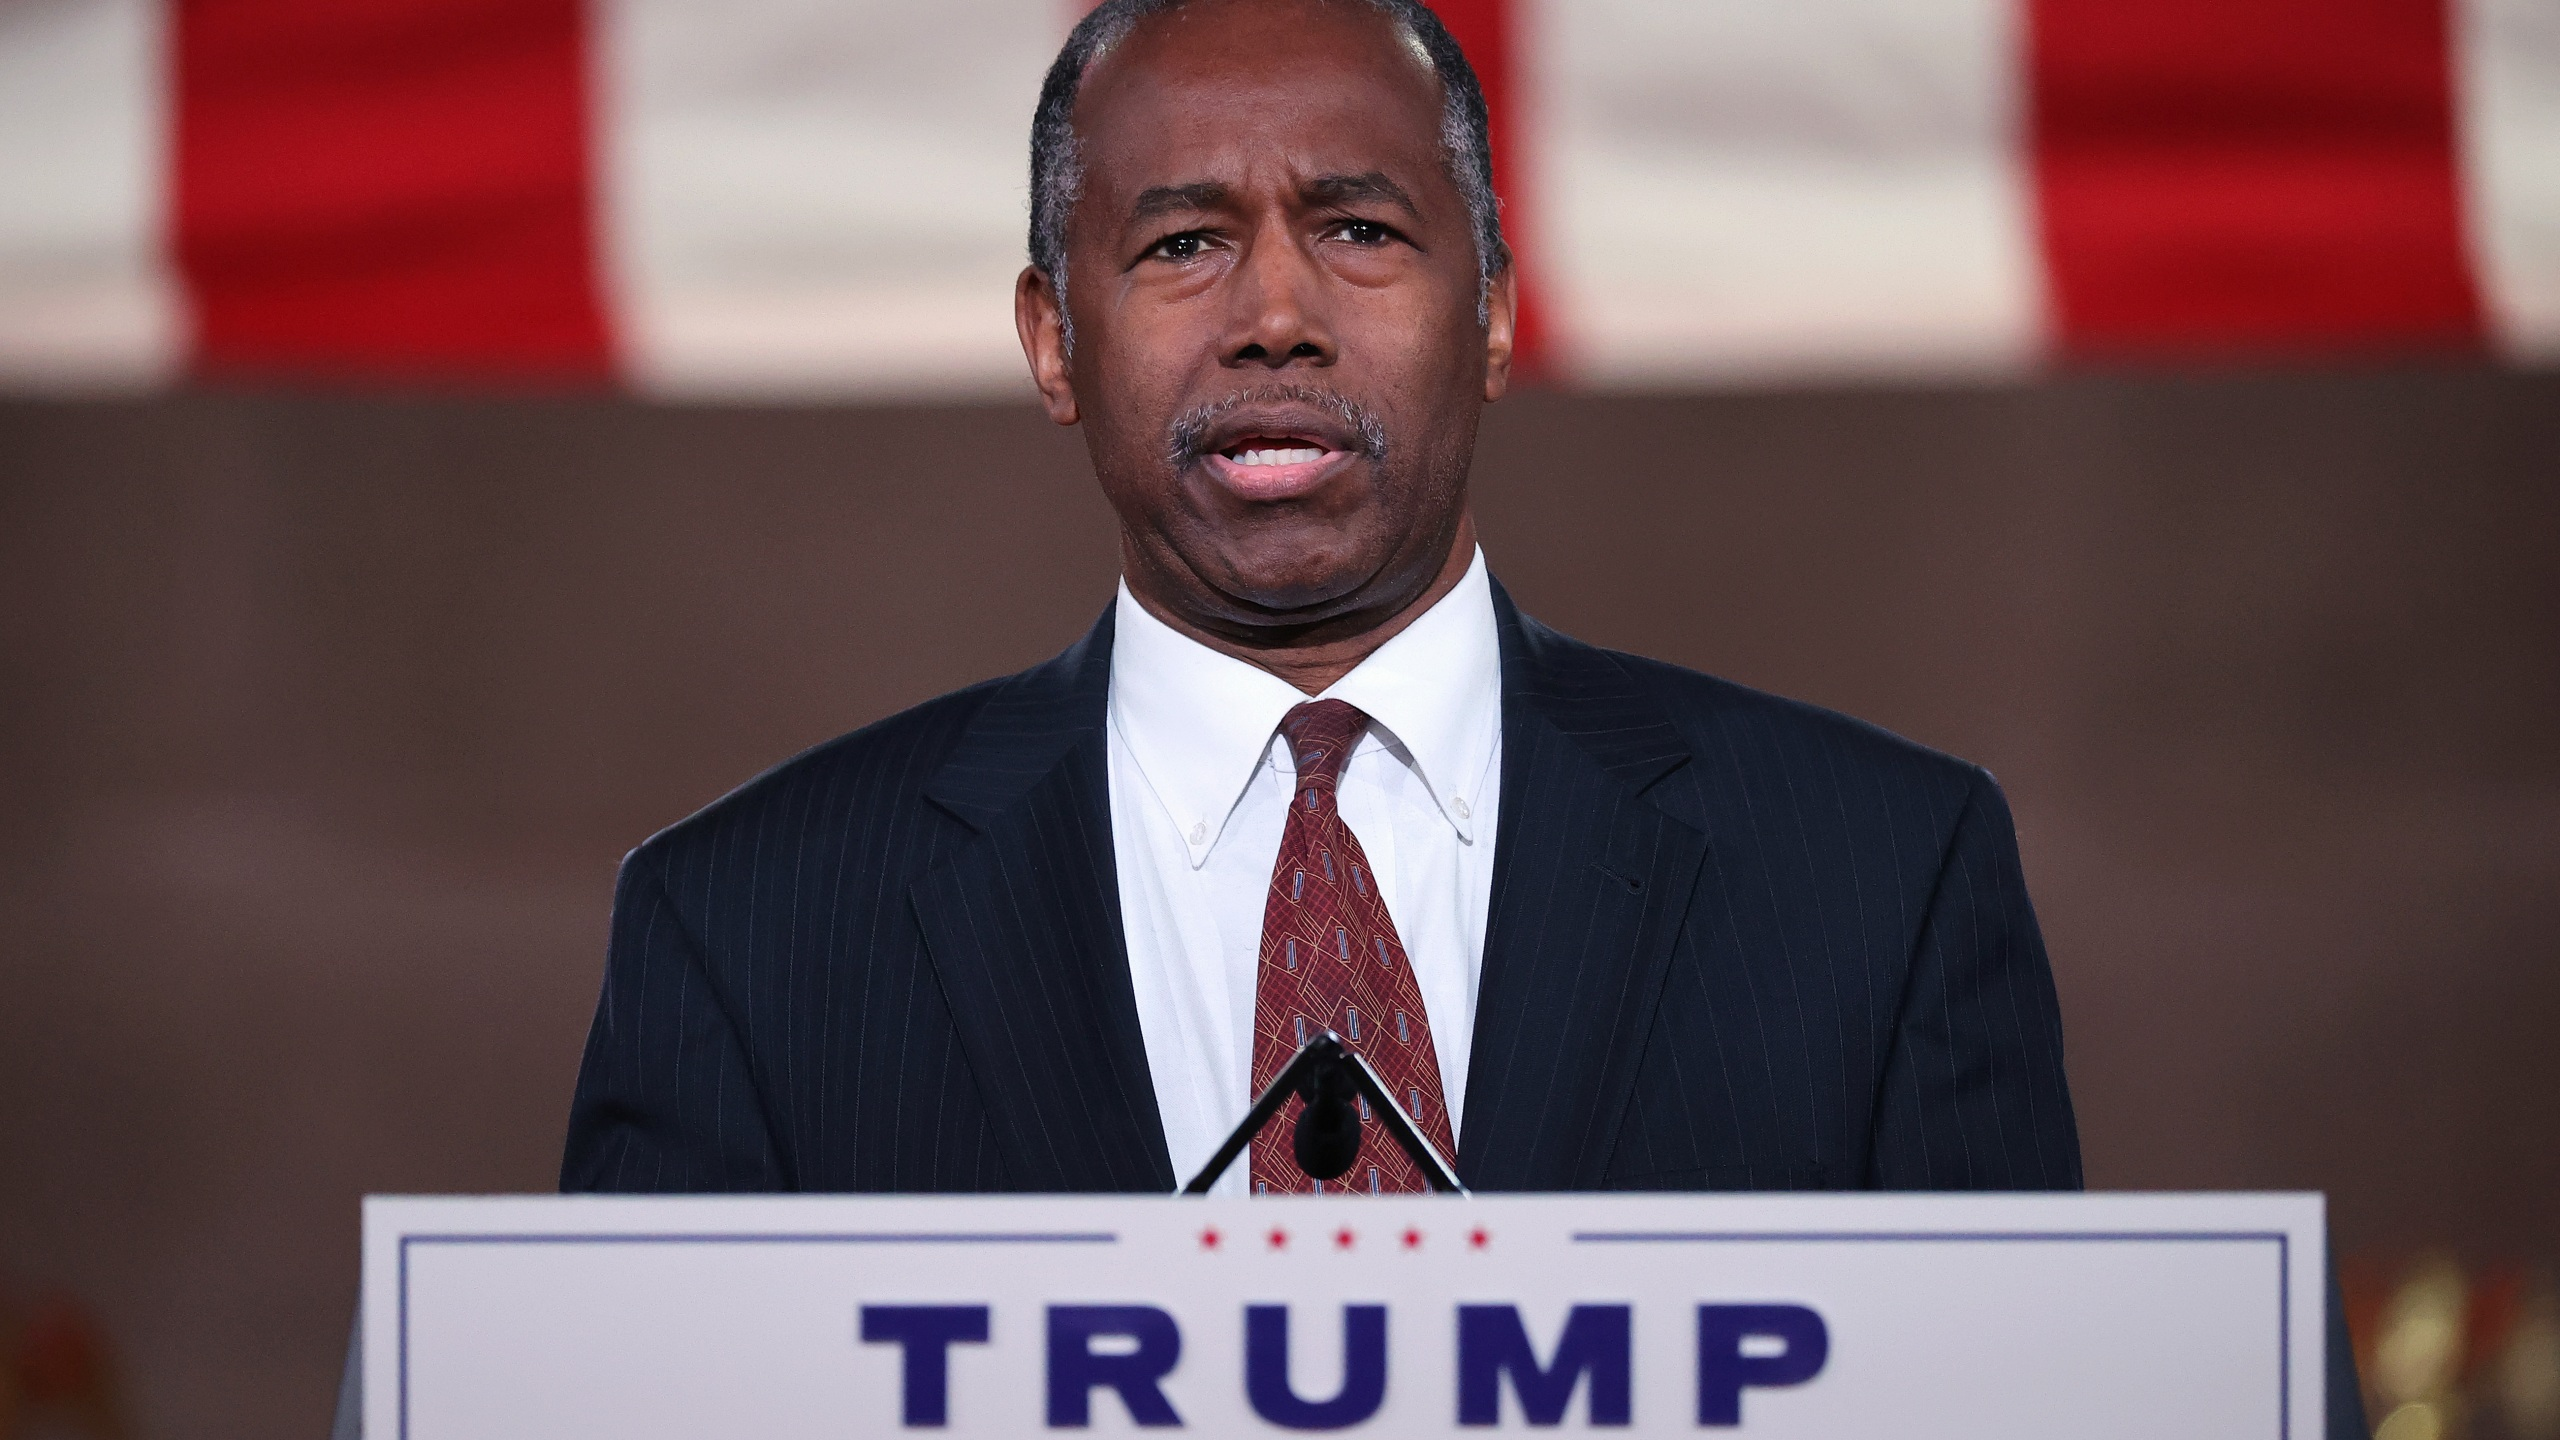 In a prerecorded address for the Republican National Convention released August 27, 2020, Housing and Urban Development Secretary Ben Carson speaks inside an empty Mellon Auditorium August 26, 2020 in Washington, DC. (Chip Somodevilla/Getty Images)